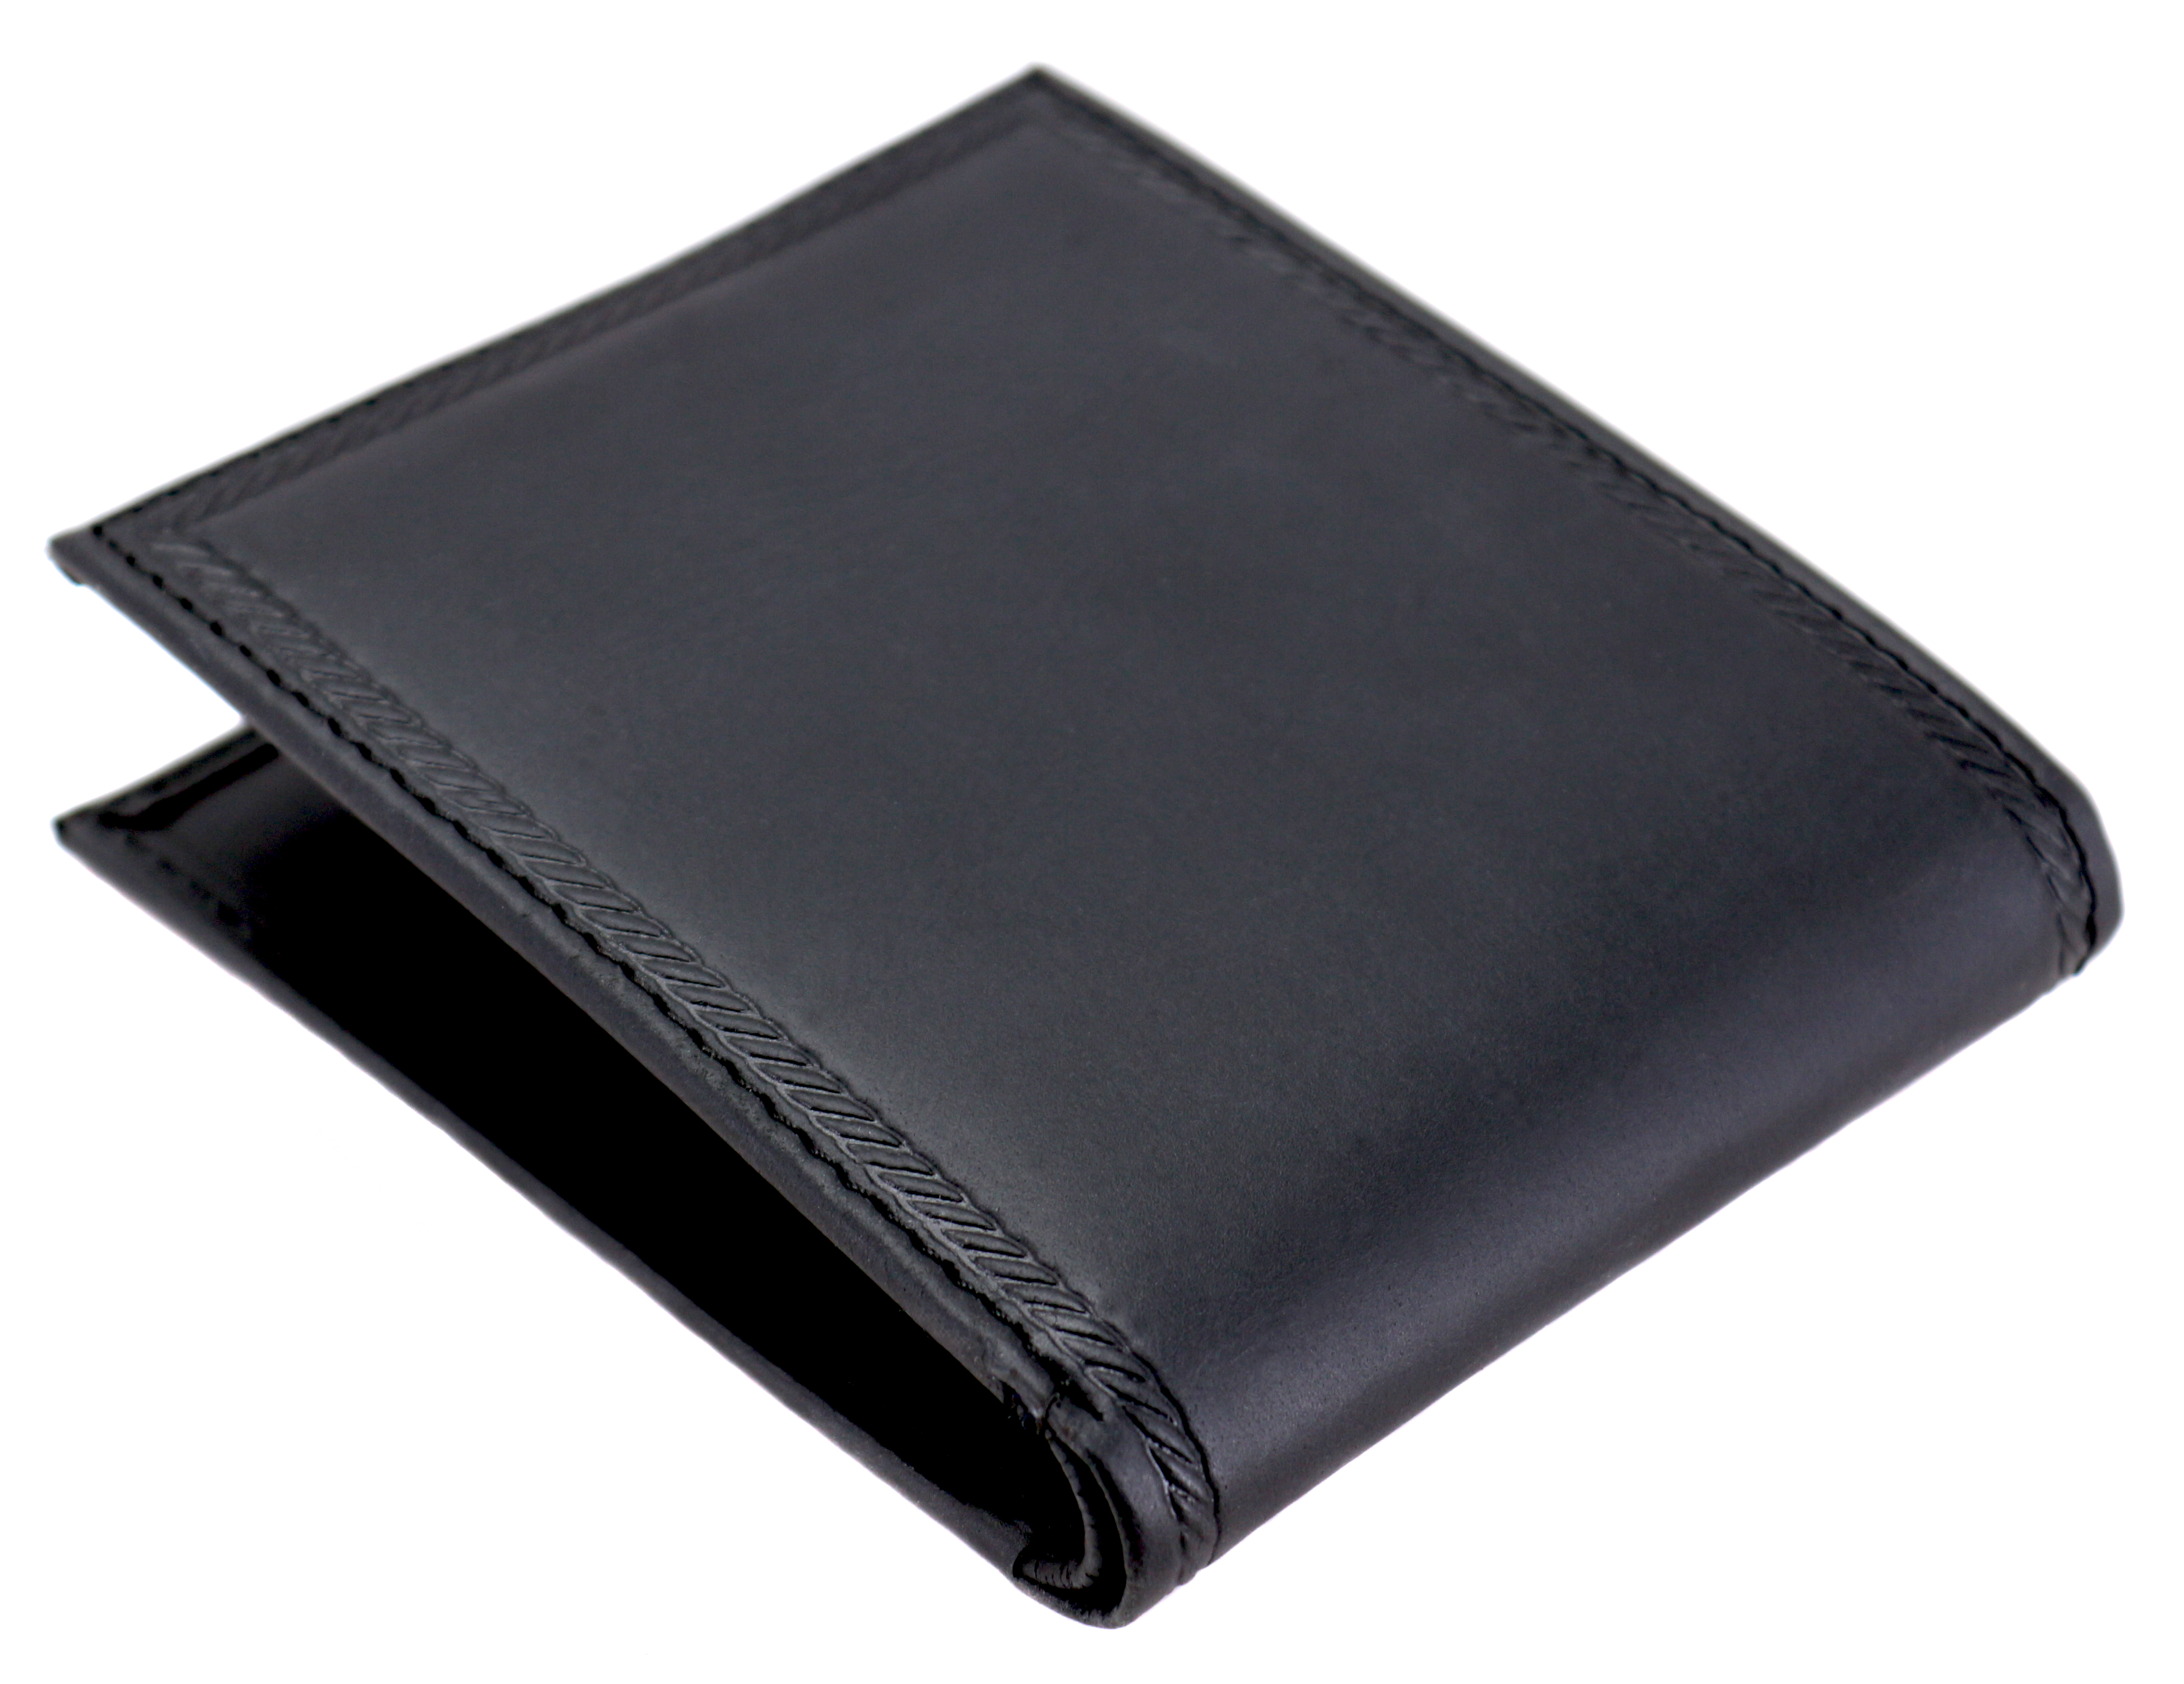 Nautica-Men-039-s-Genuine-Vintage-Leather-Credit-Card-ID-Billfold-Passcase-Wallet thumbnail 5